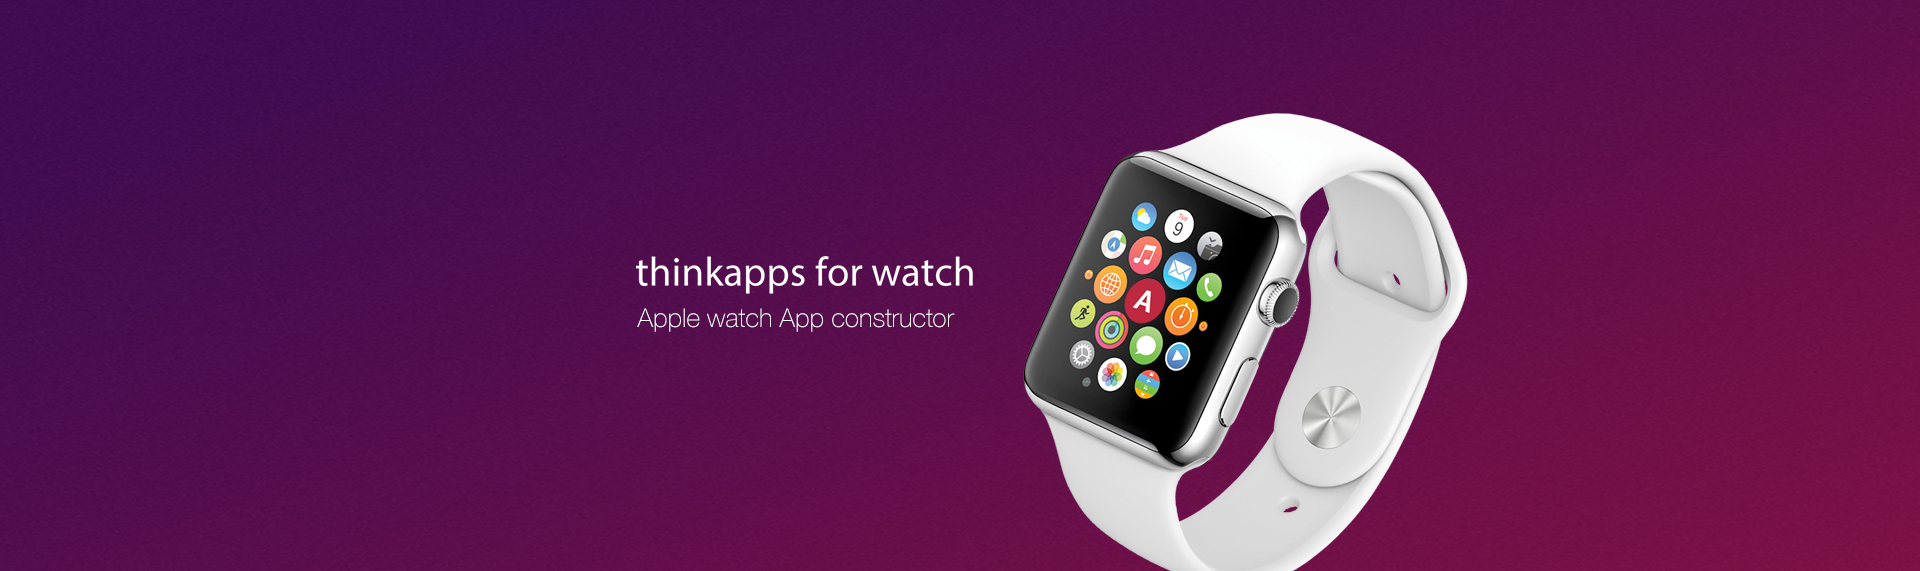 ThinkApp for Watch